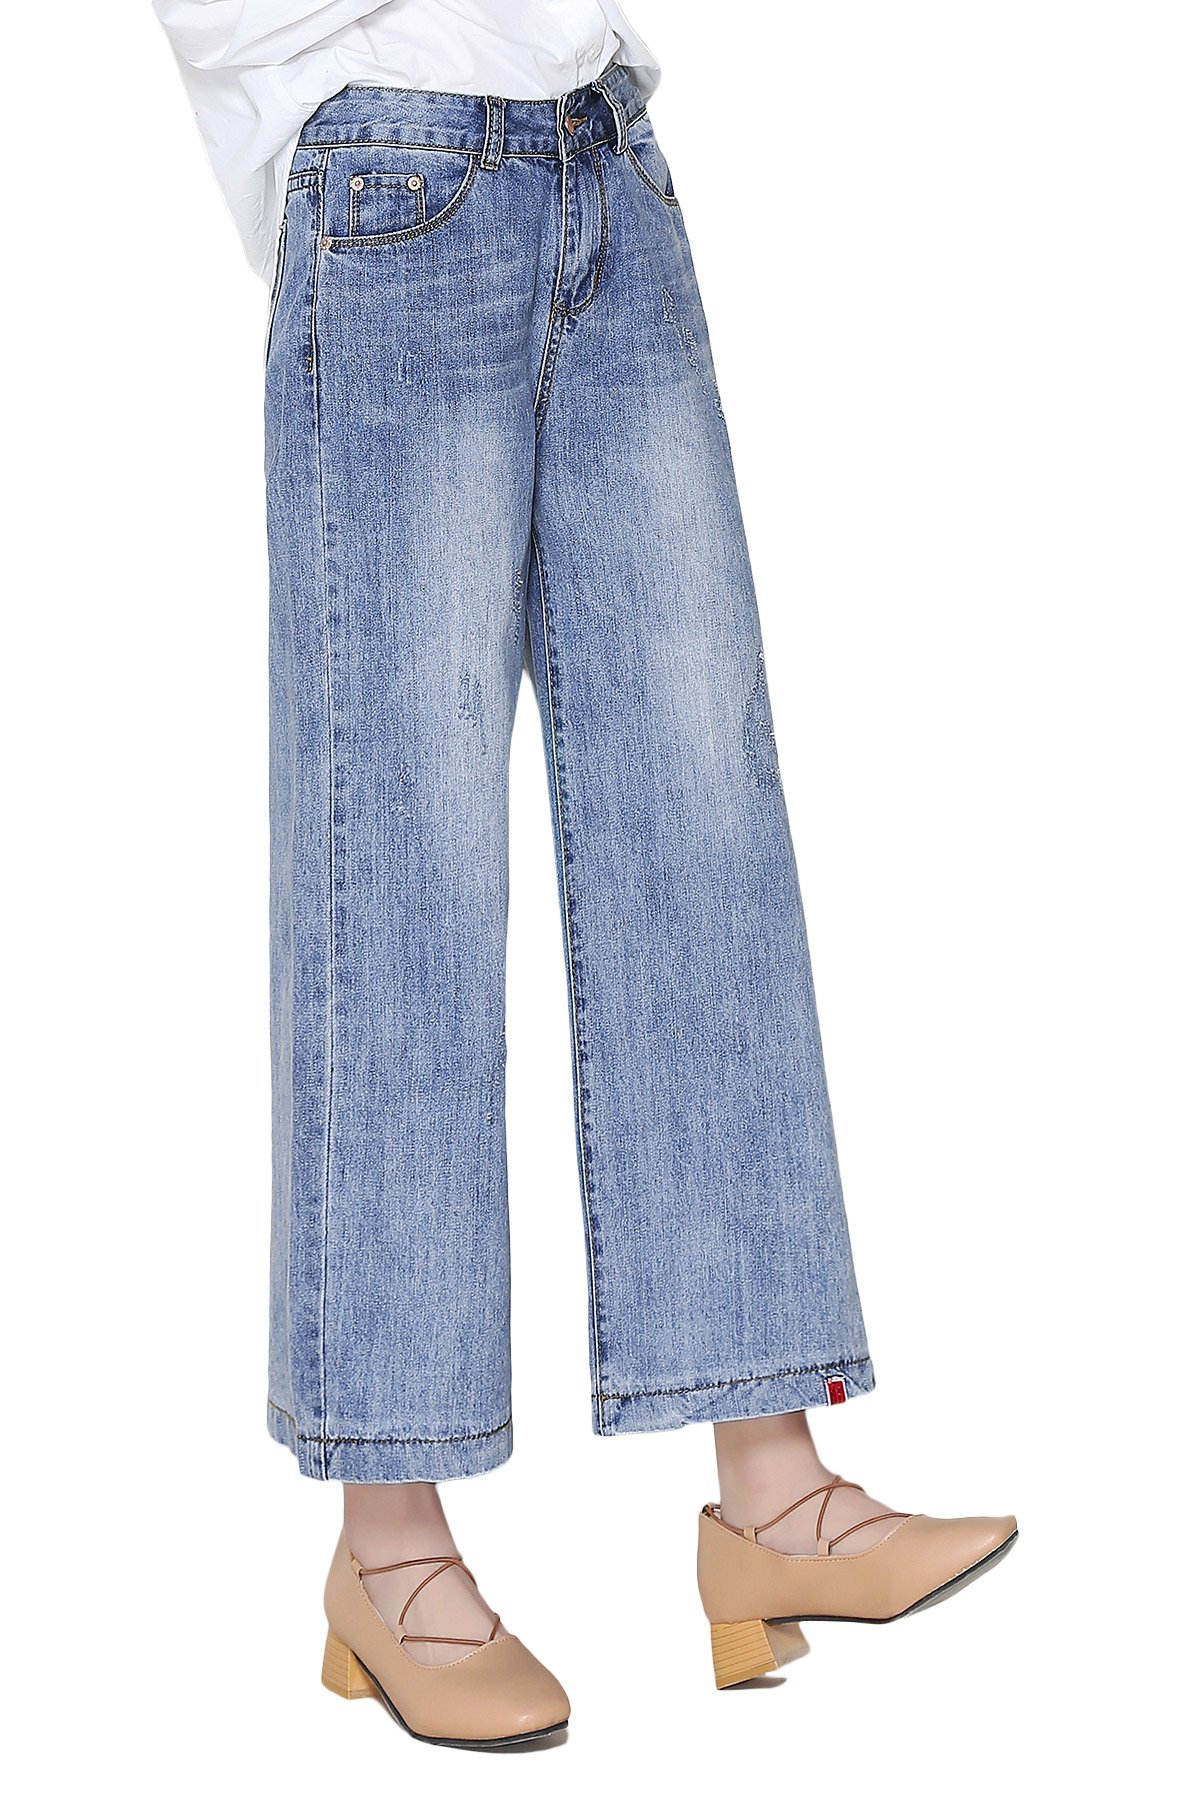 Oriarm Denim Wide Leg Crop Jeans for Women Fade to Blue Washed Bleach Ripped Loose (12=Waist:33.1''/Hip:43.3'')